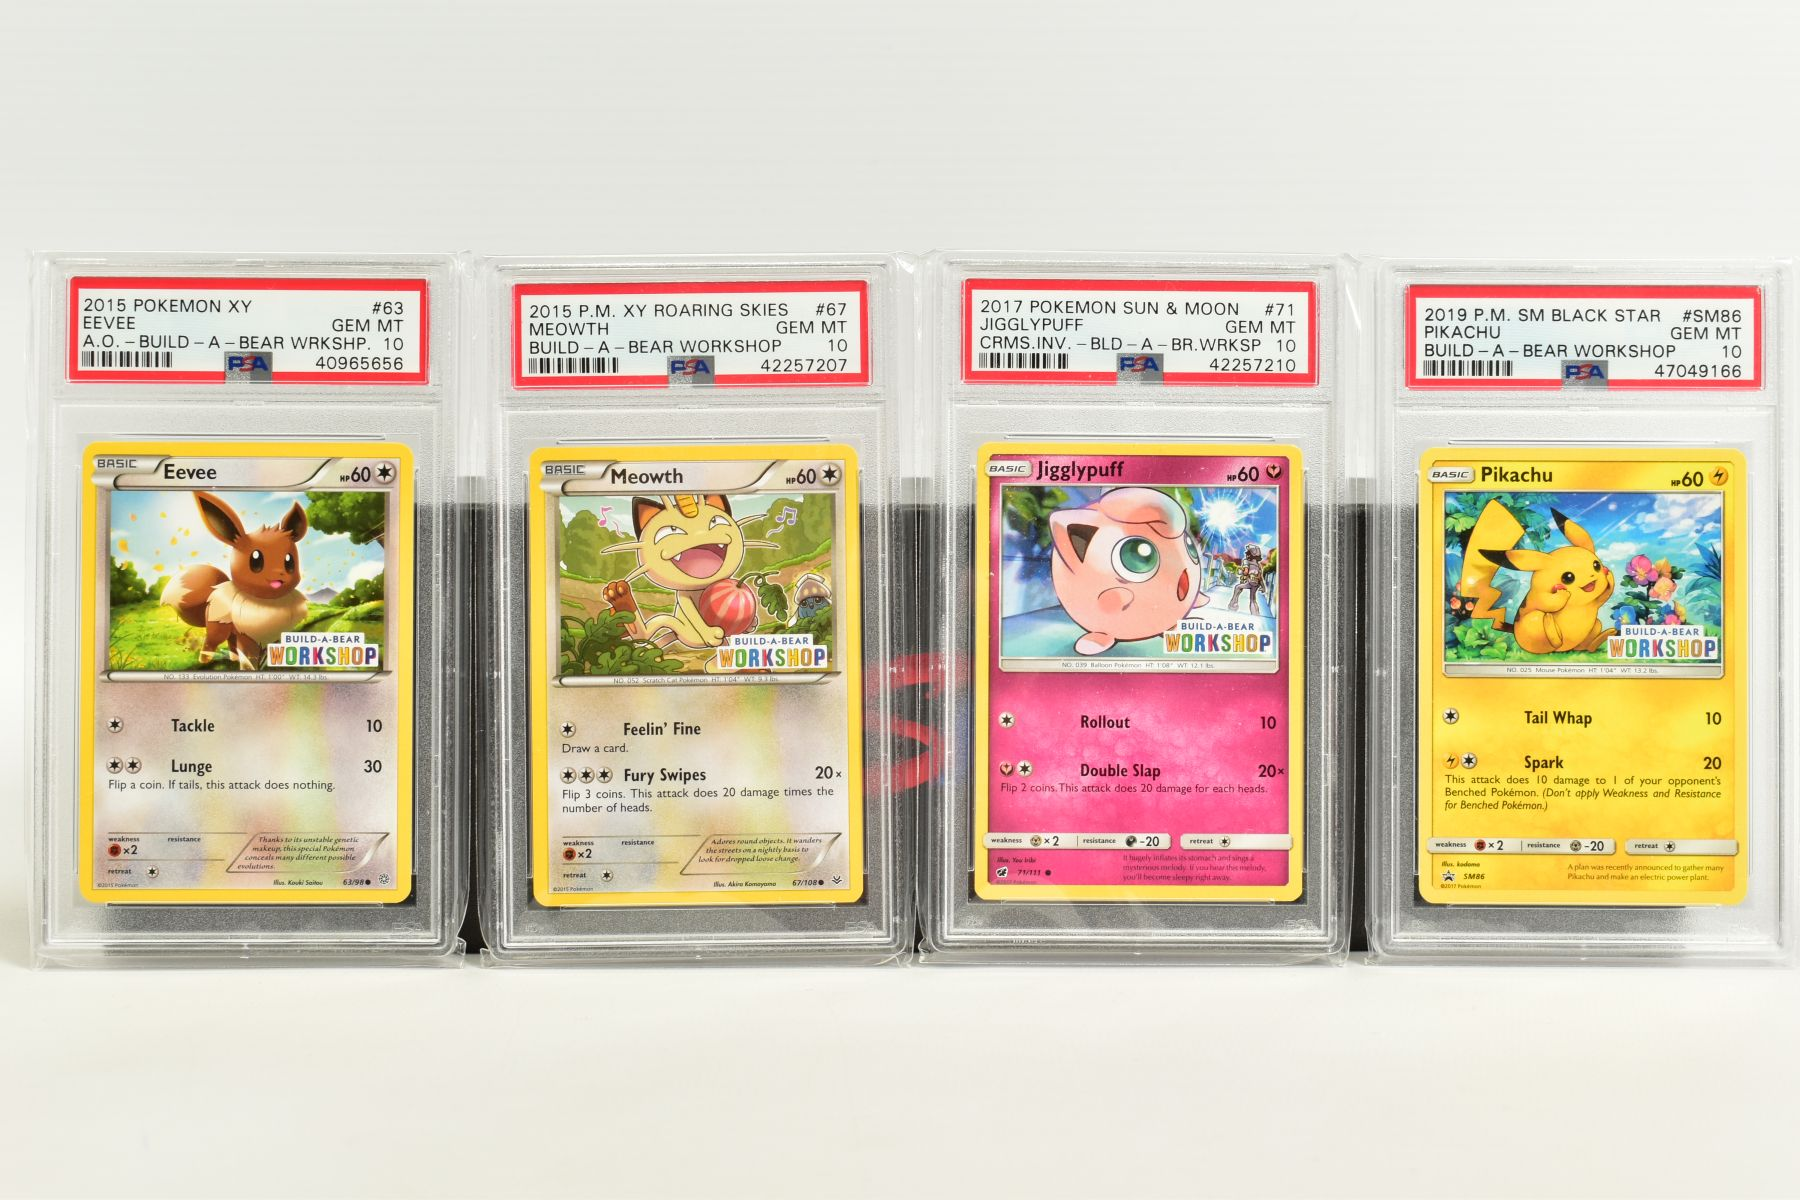 A QUANTITY OF PSA GRADED POKEMON CARDS, assorted cards from the Southern Islands Promos, Build-A- - Image 6 of 12